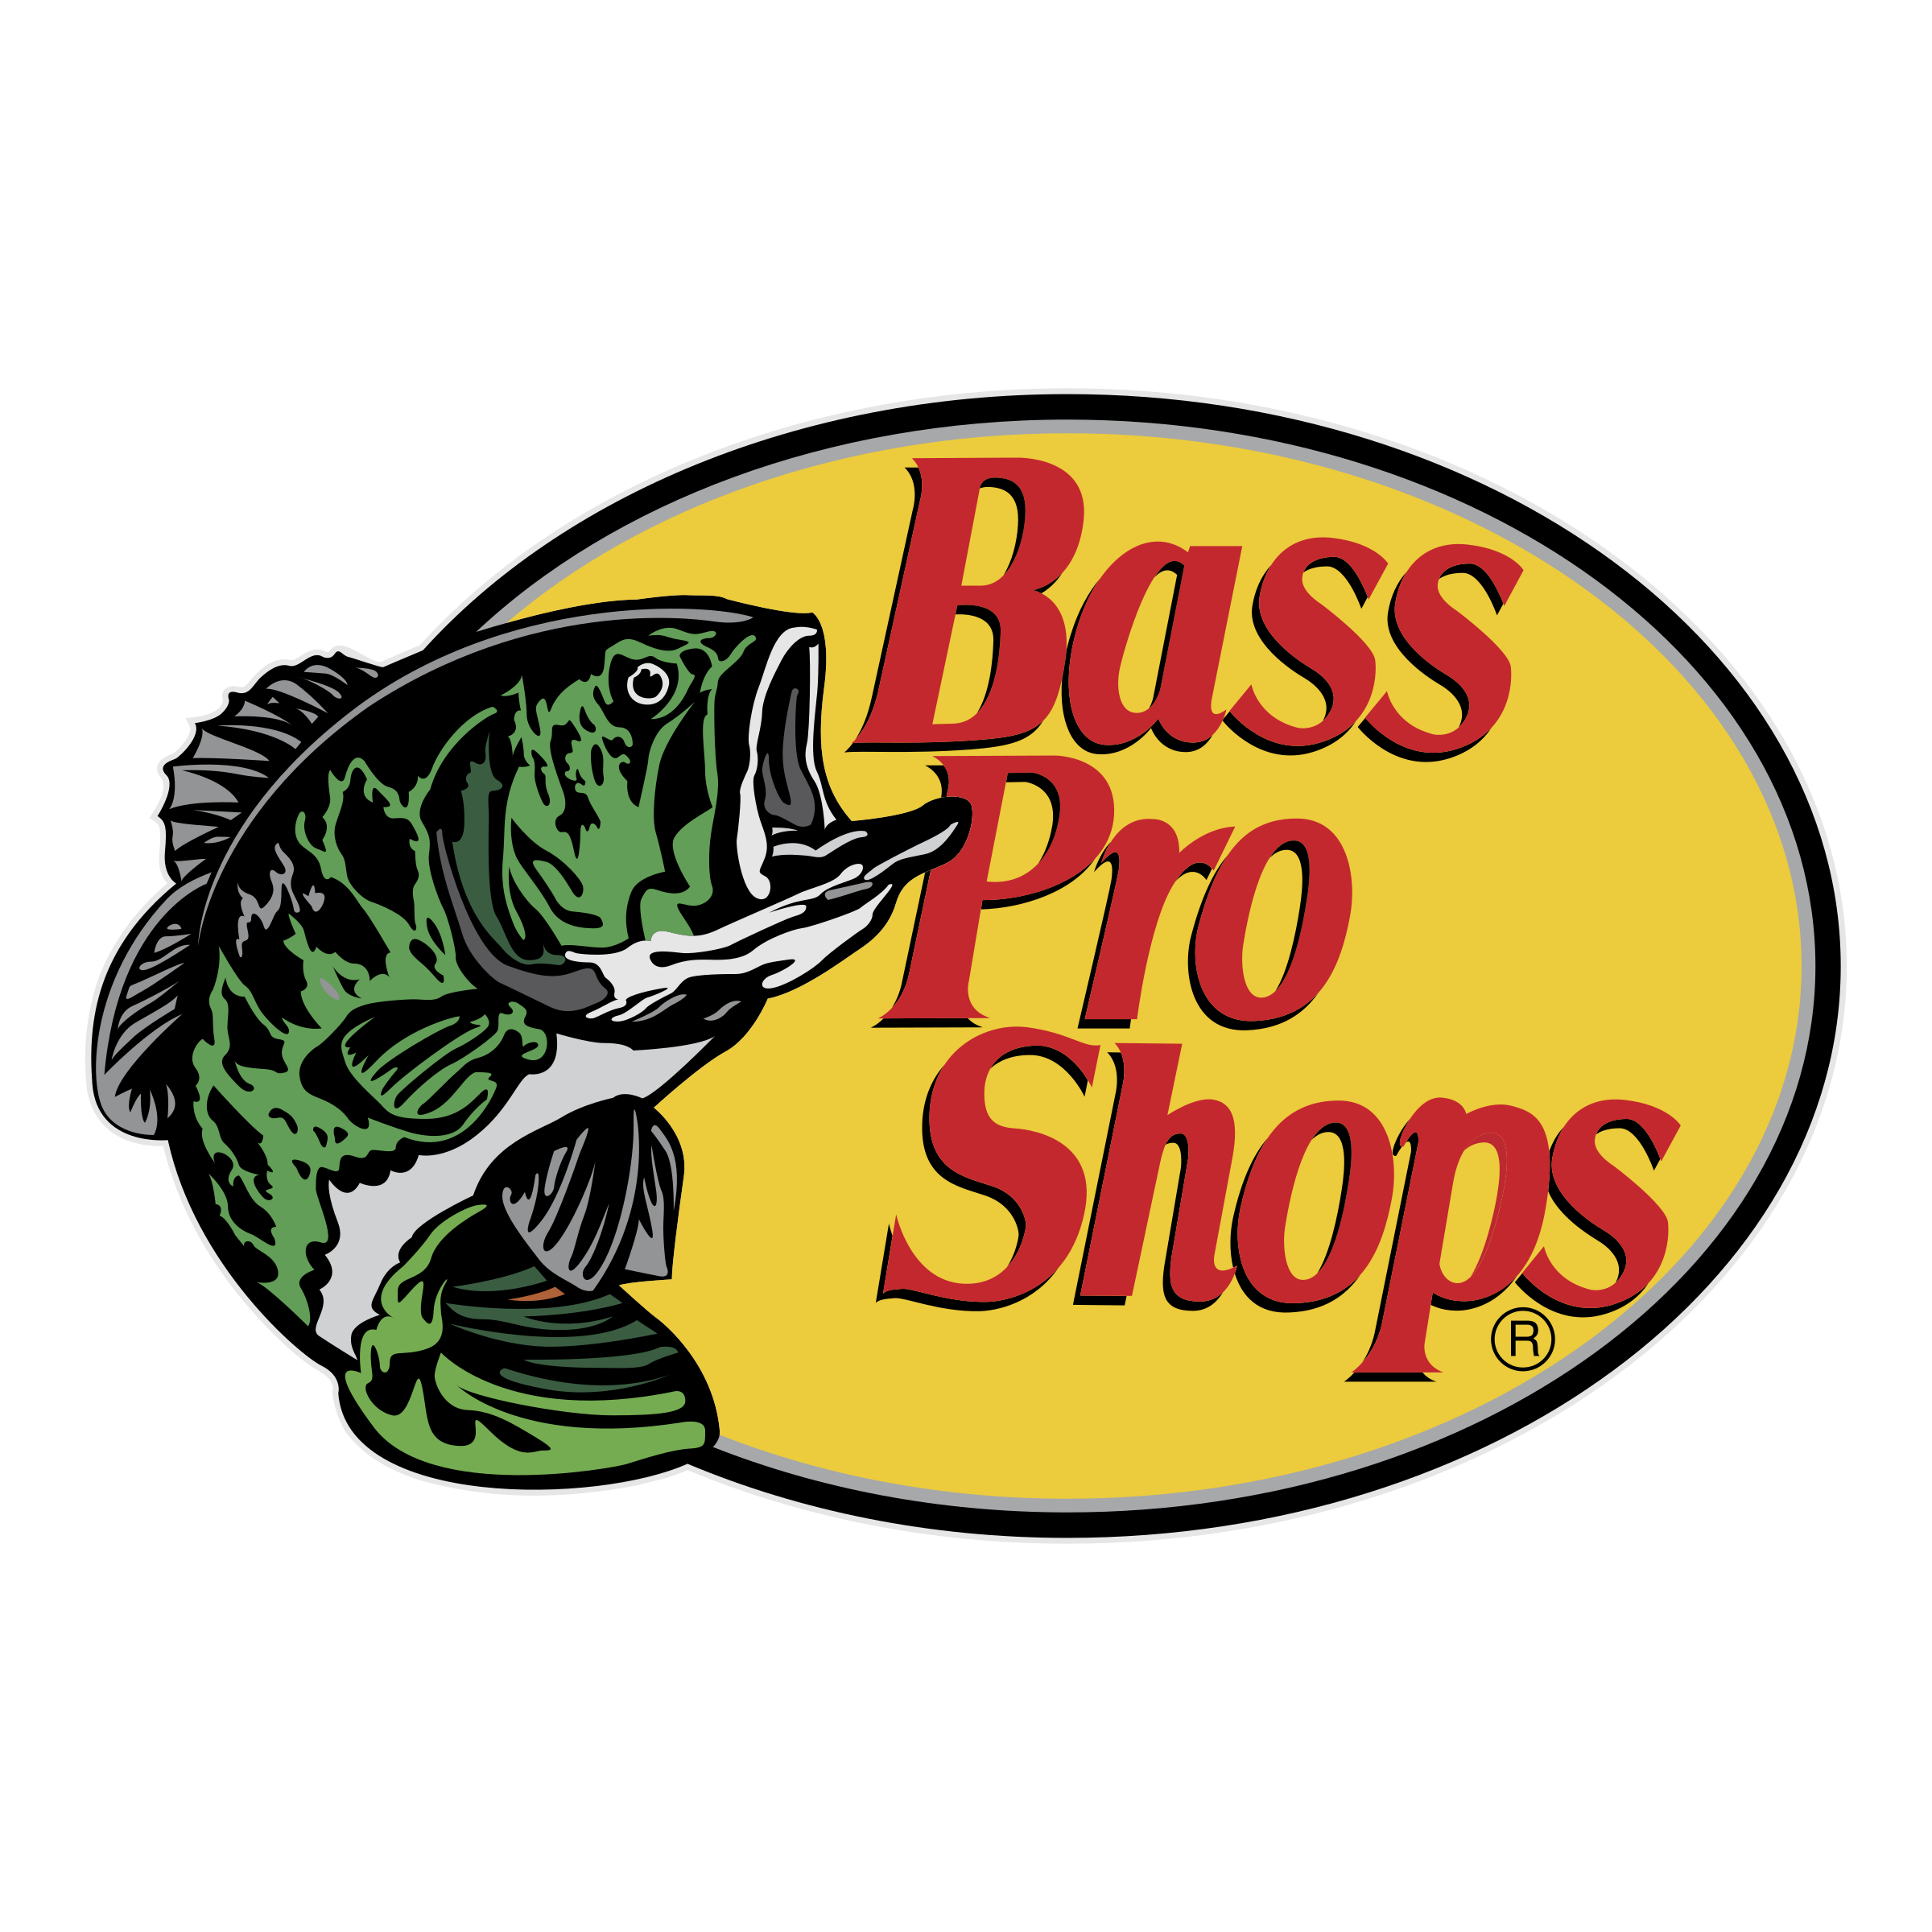 Image result for bass pro shop logo